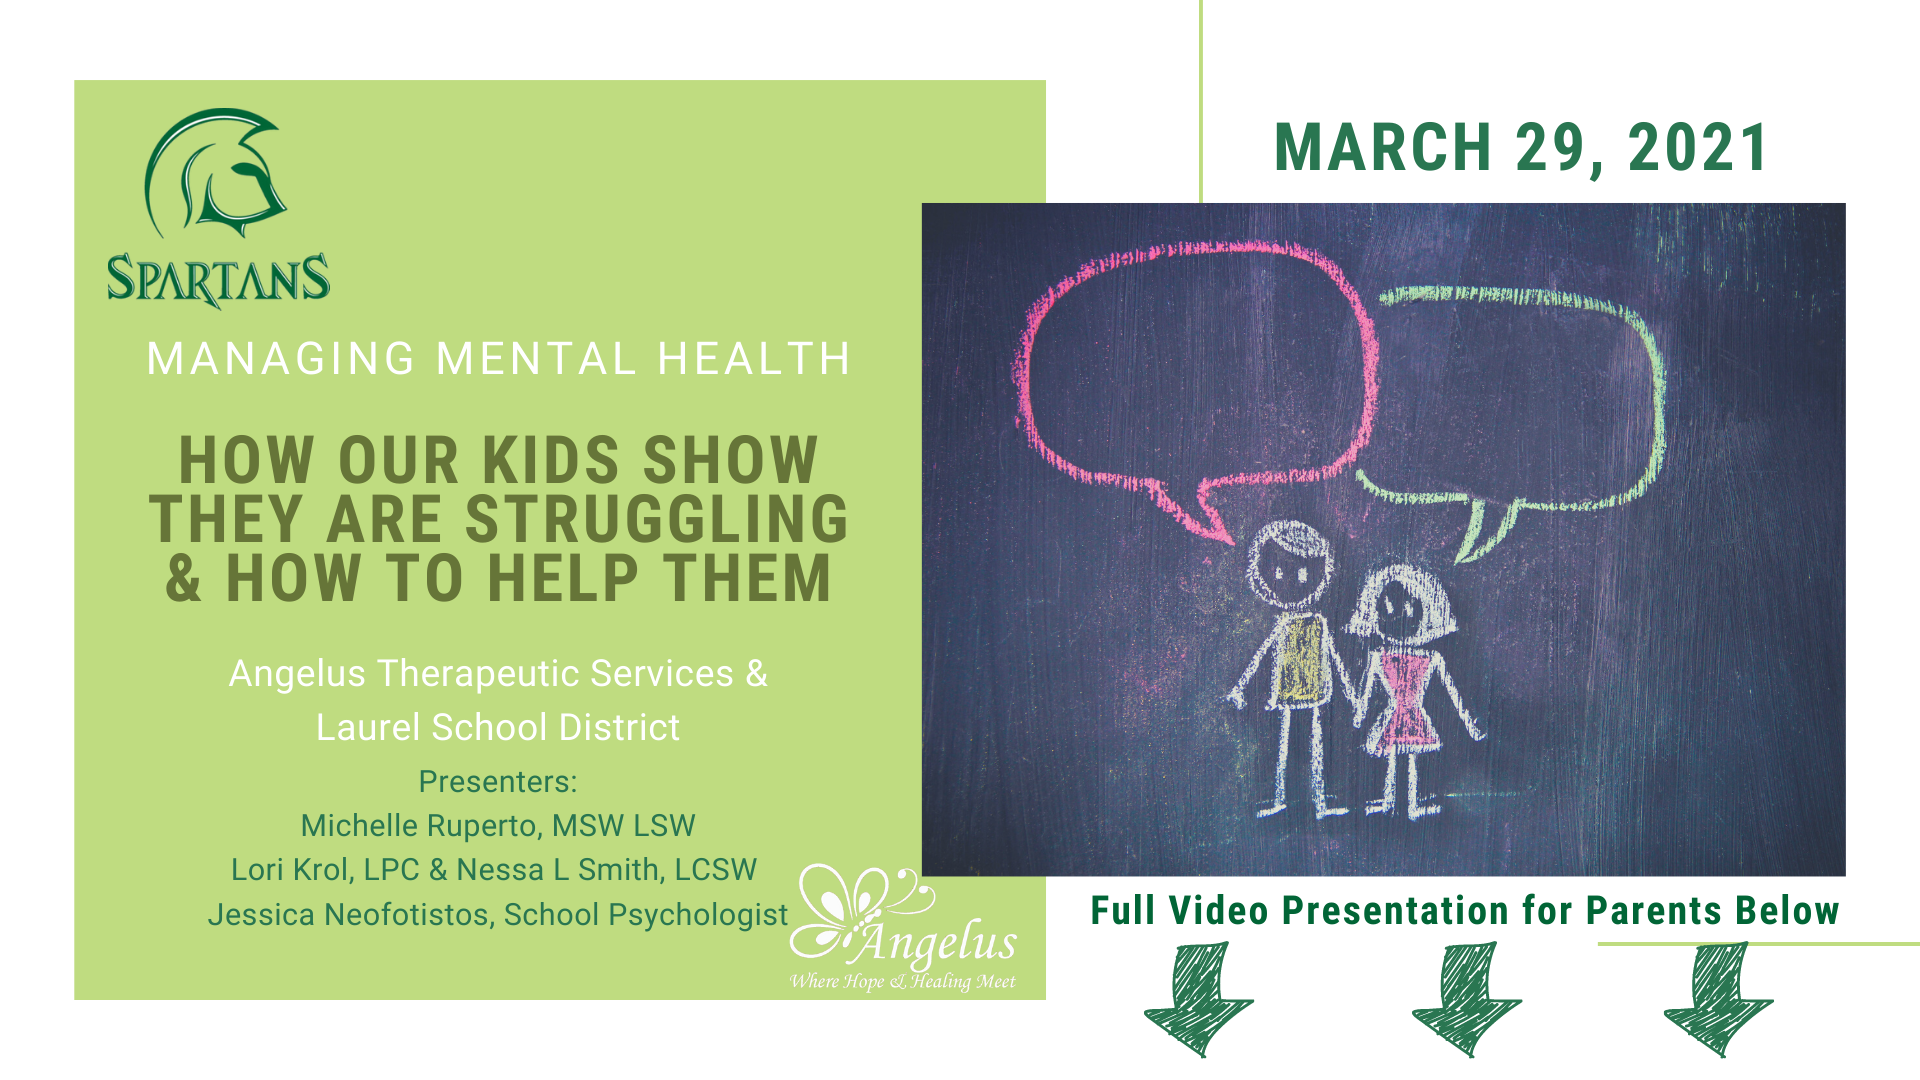 managing mental health for kids